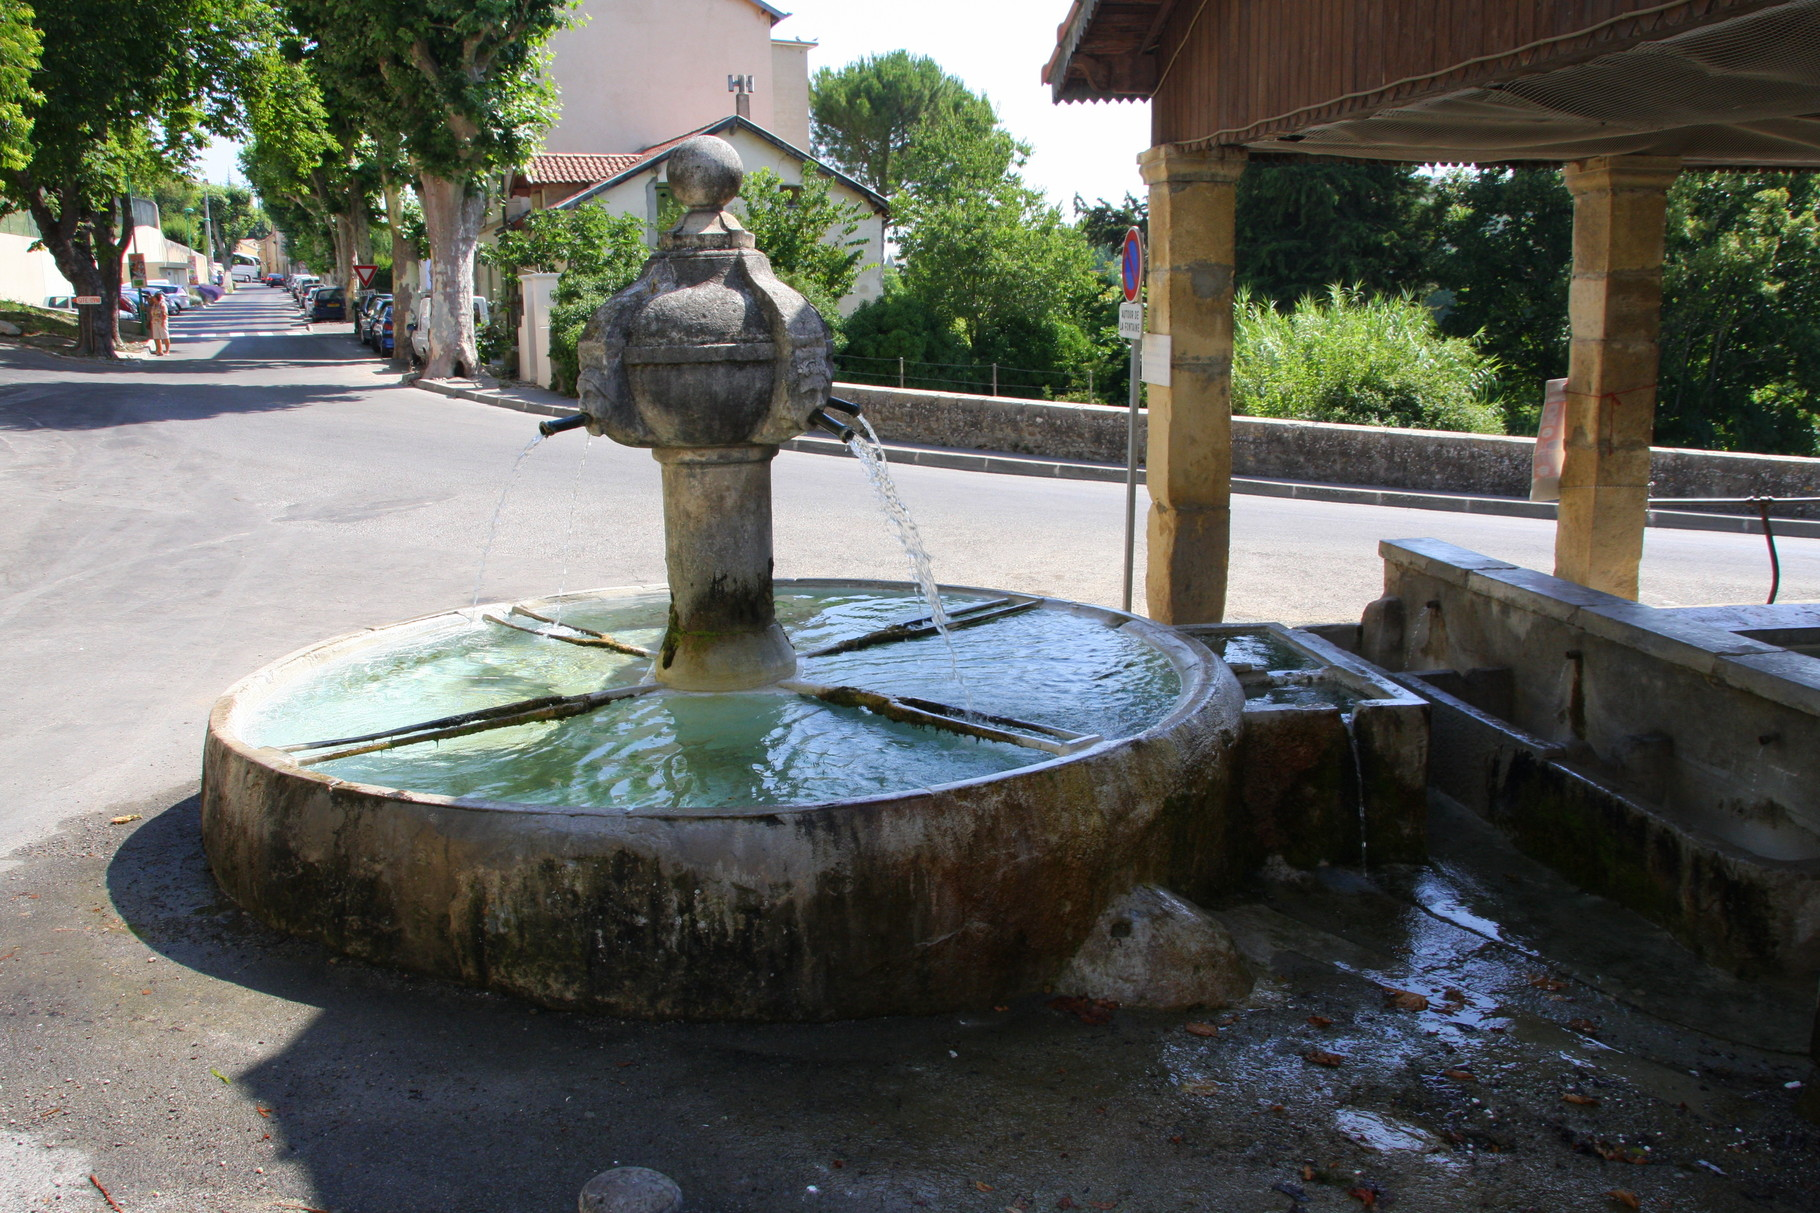 Bild: Fontaine in Valensole